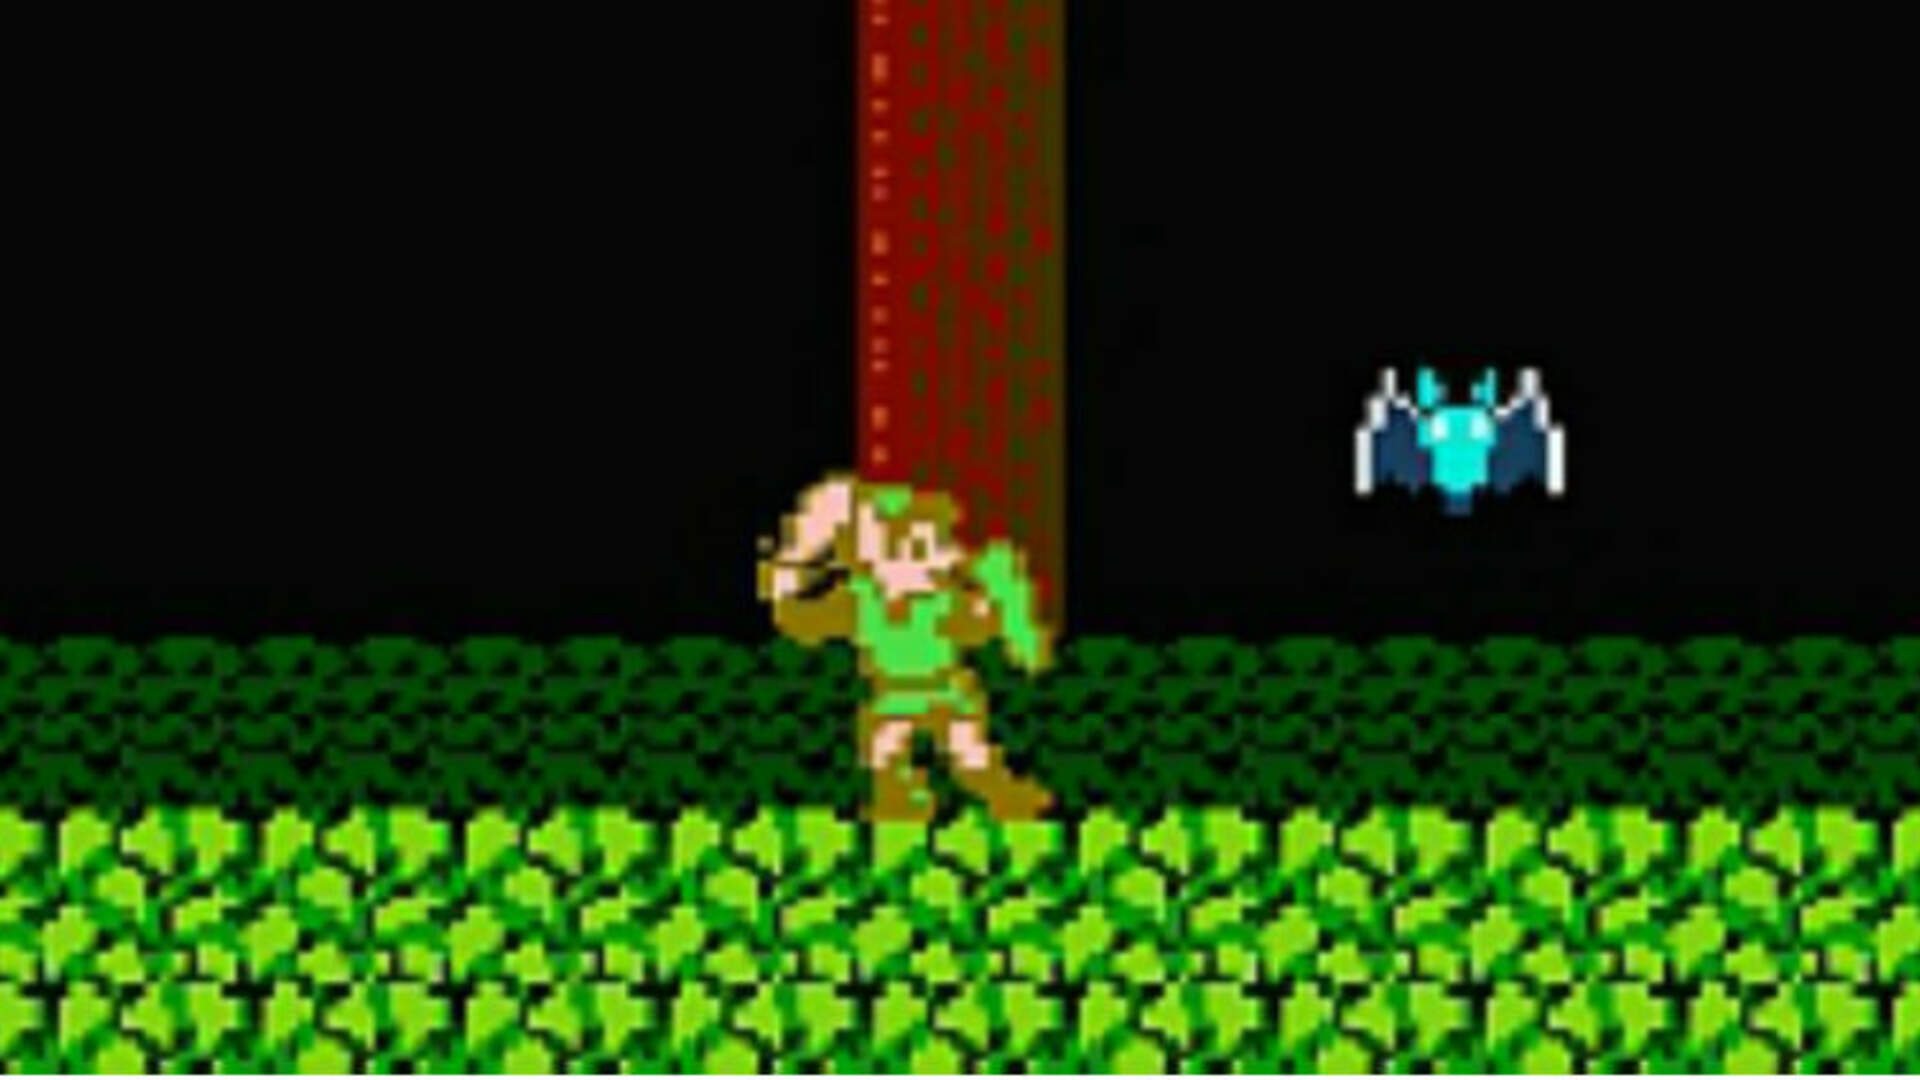 The Legend of Zelda and The Legend of Zelda II NES Classic Edition: Dungeon Locations, Heart Container Locations, and How to Find Lots of Rupees